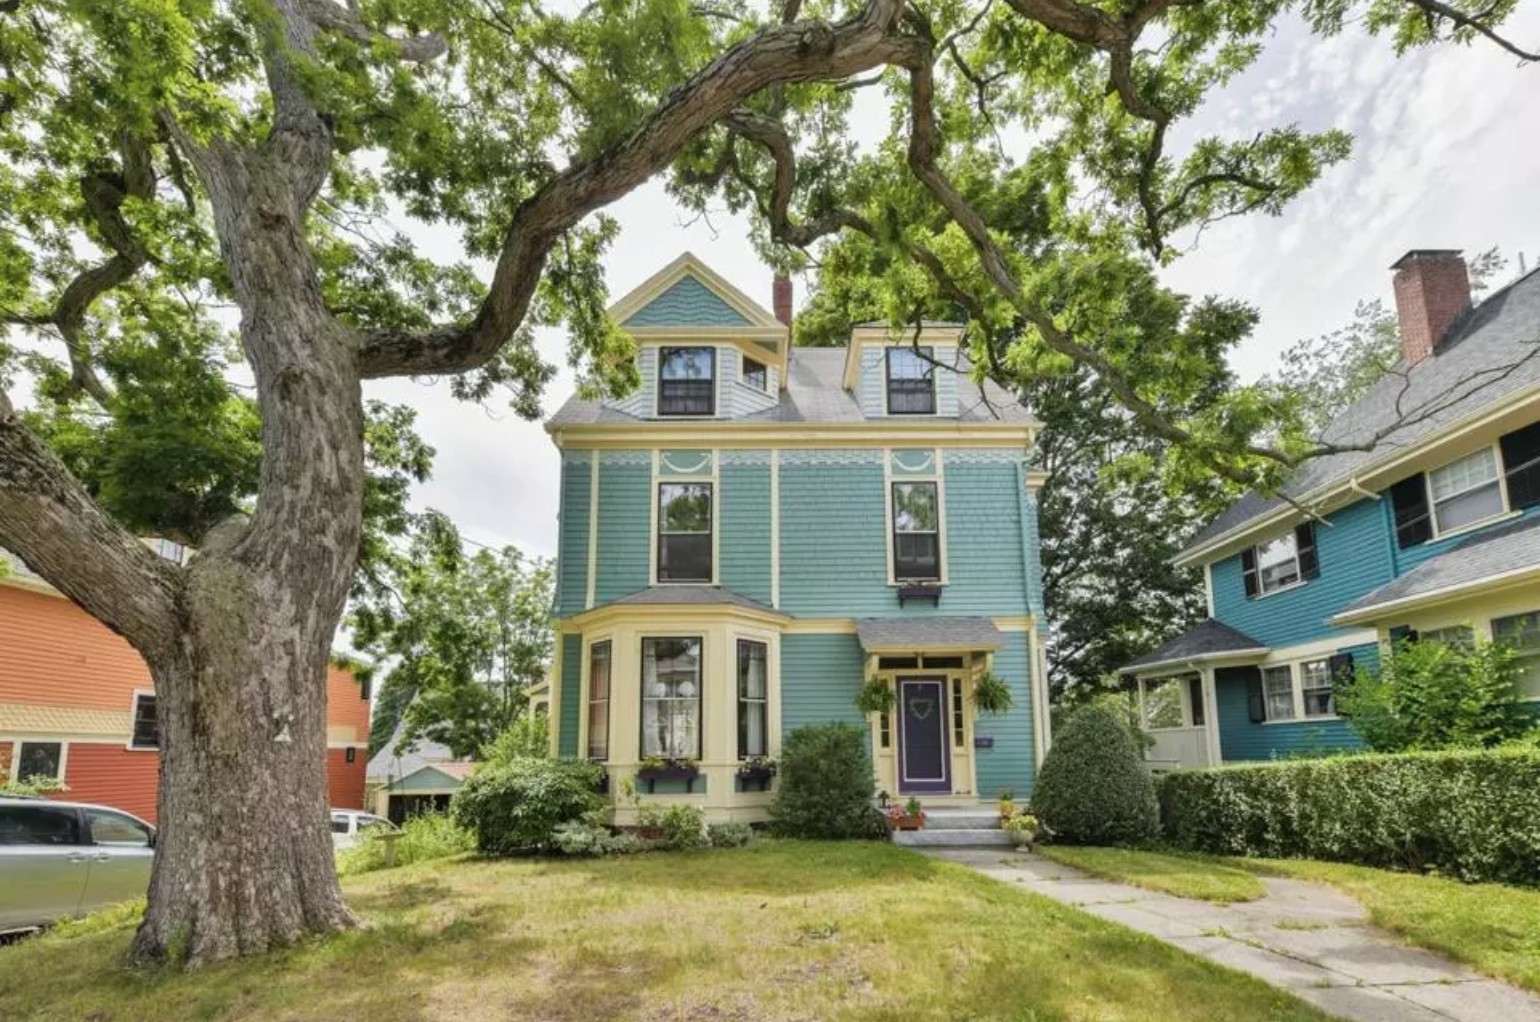 For sale: Homes near the Red Line's Alewife and Ashmont stops - By Jon GoreyAug 10, 2018